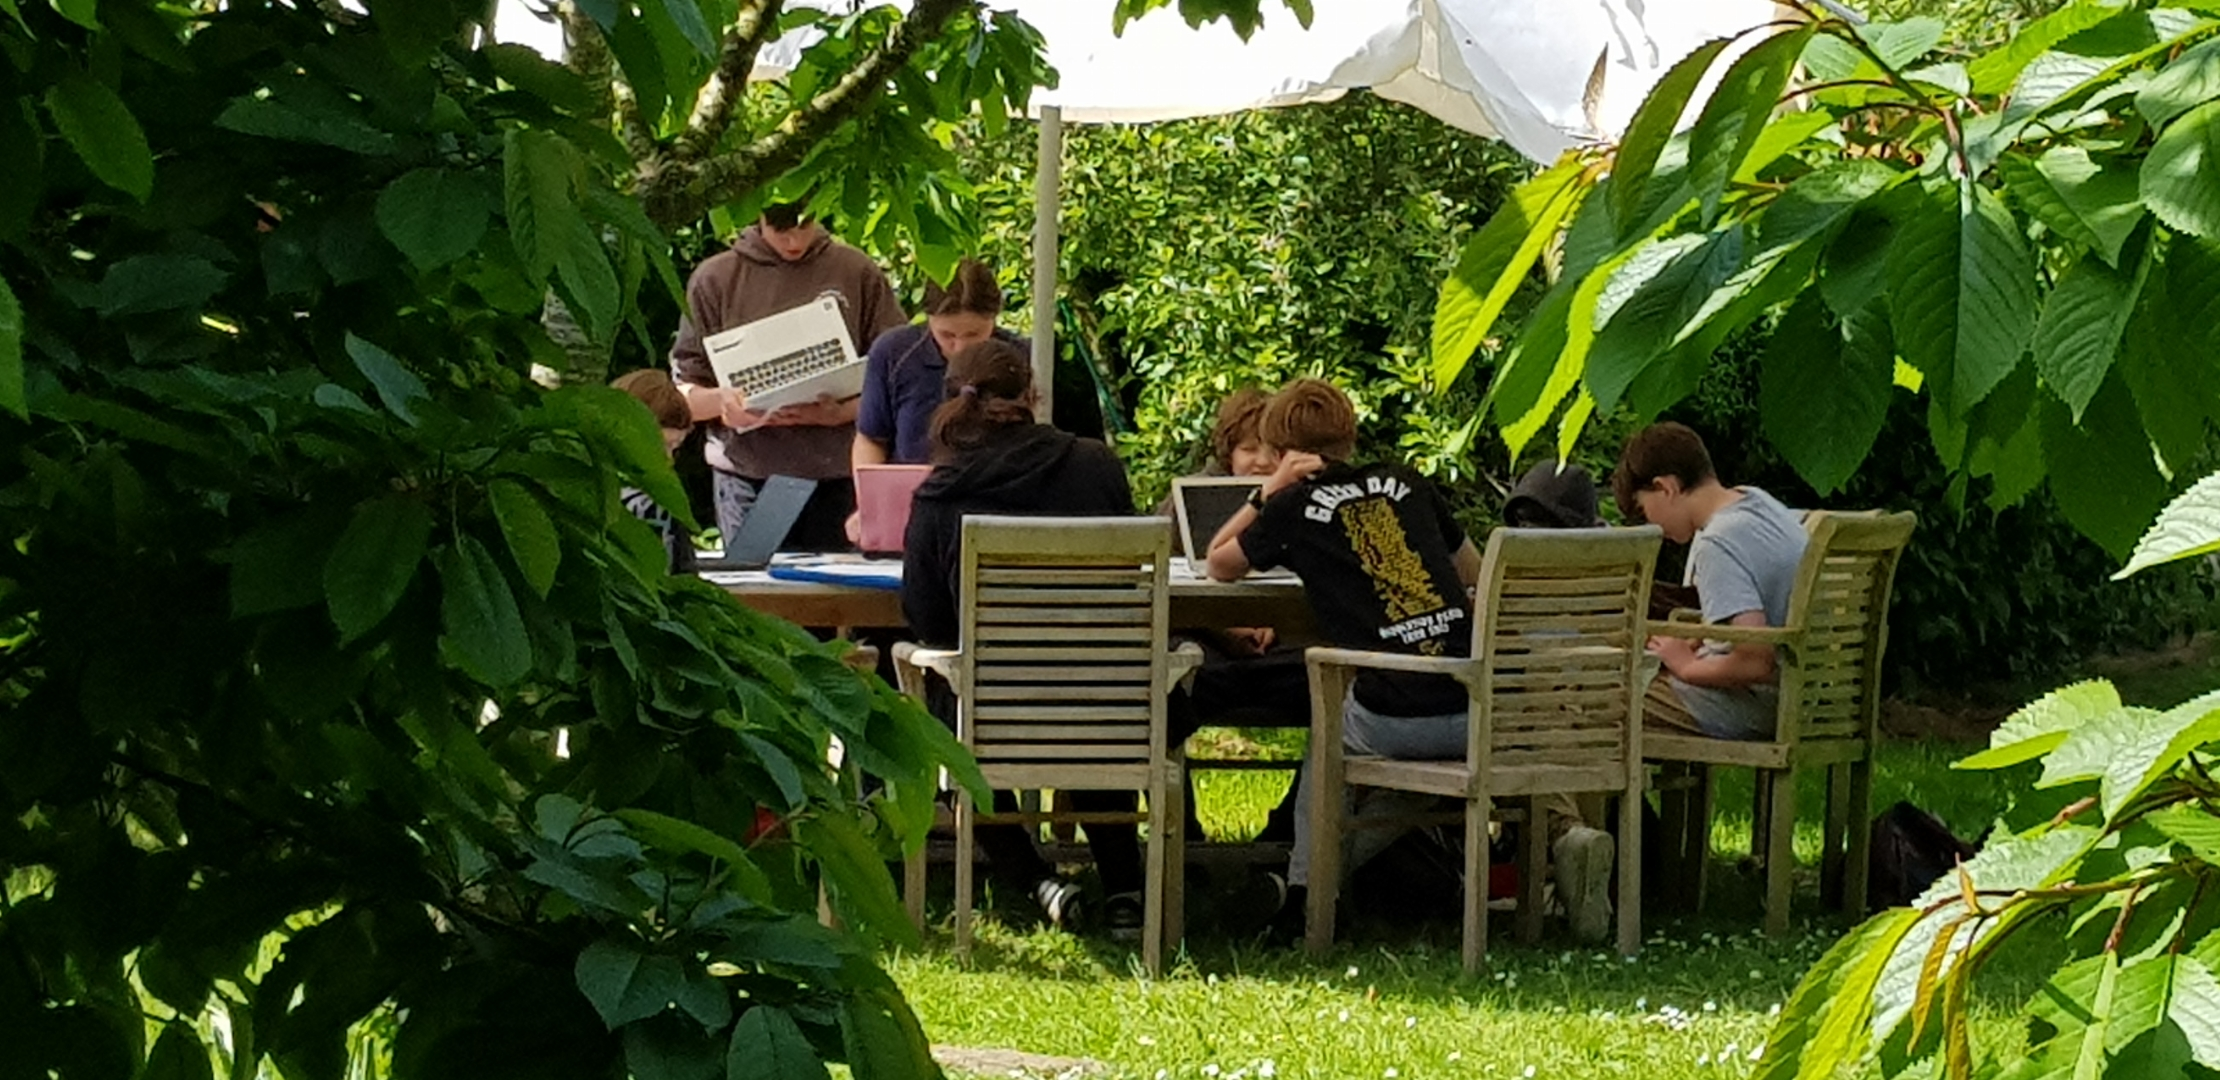 IT lessons outdoors